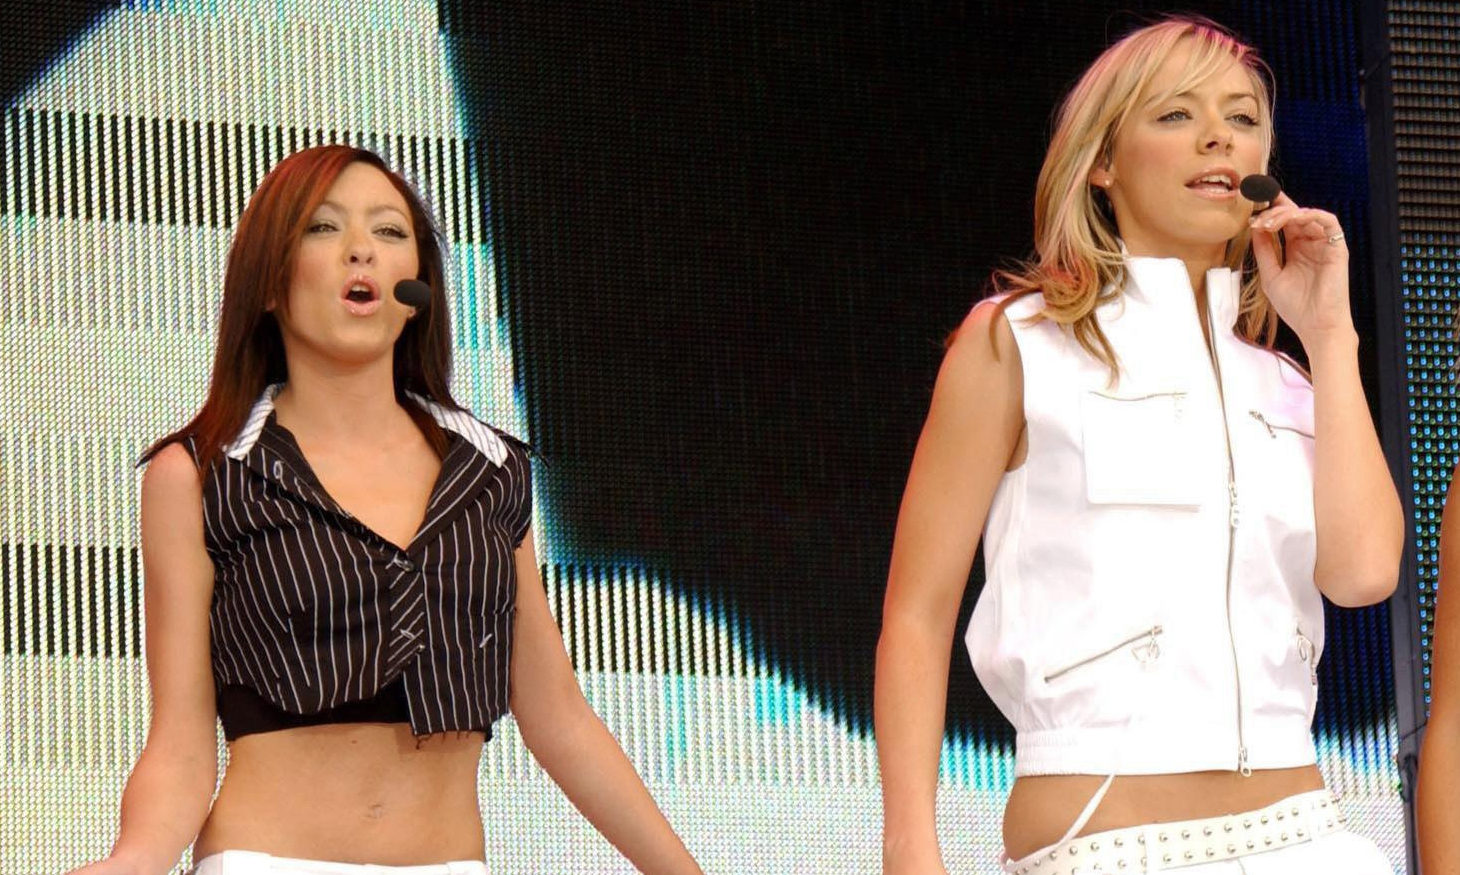 Atomic Kitten performing in 2004.